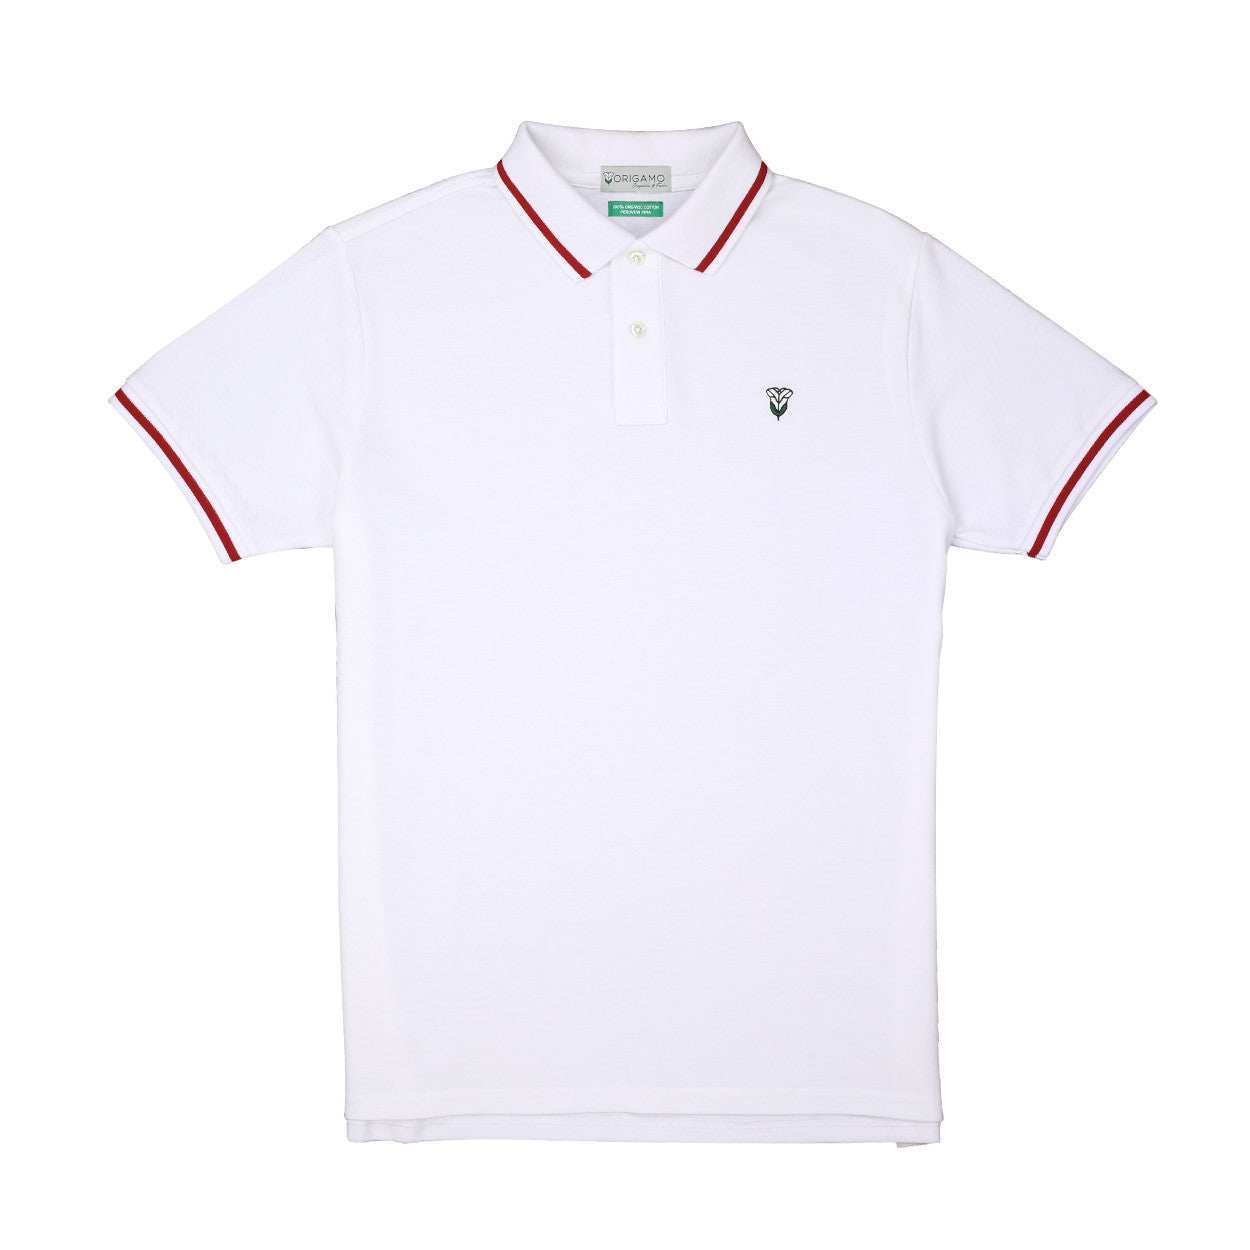 Pacific Polo Evolve </br>Double Pique - 100% Organic Pima Cotton